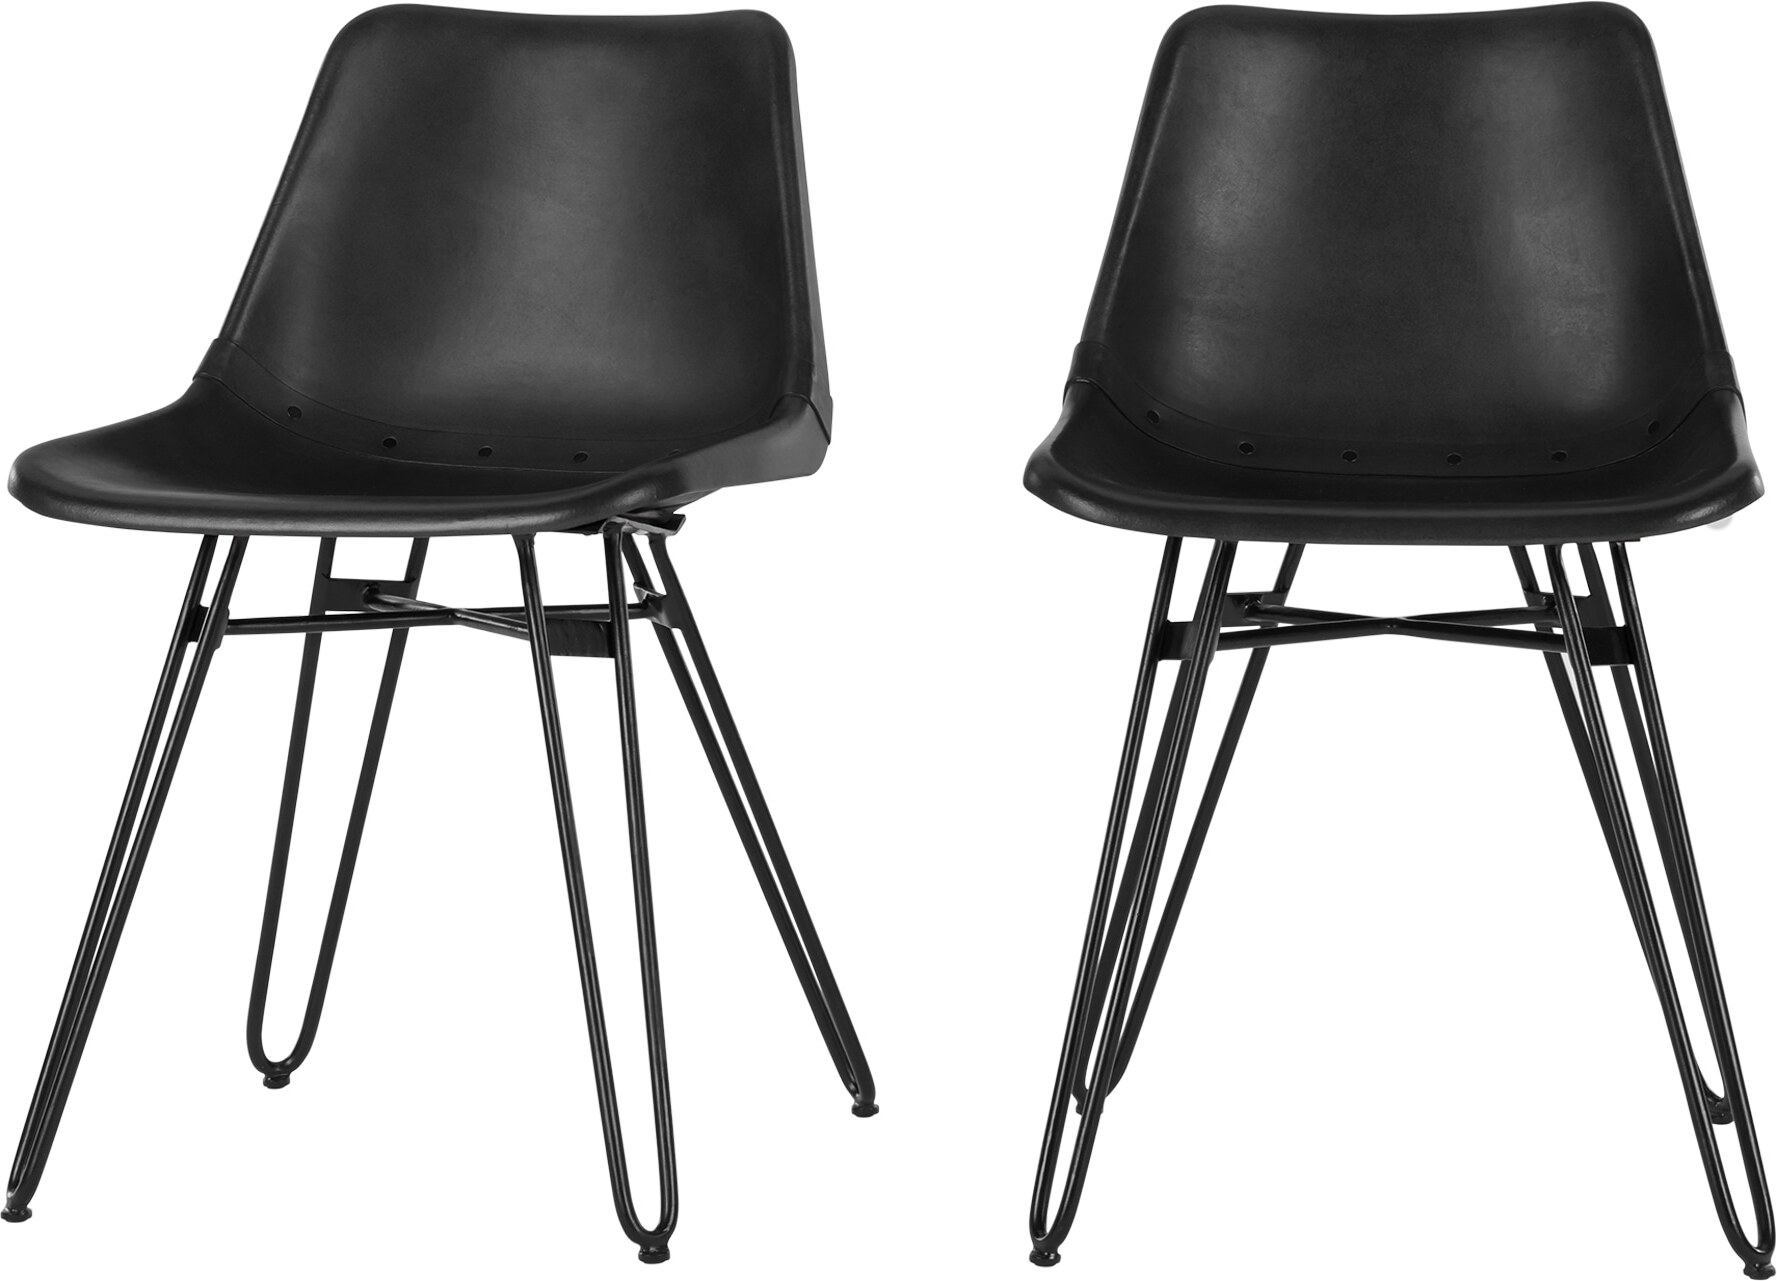 Image of 2 x Kendal Dining Chair, Black